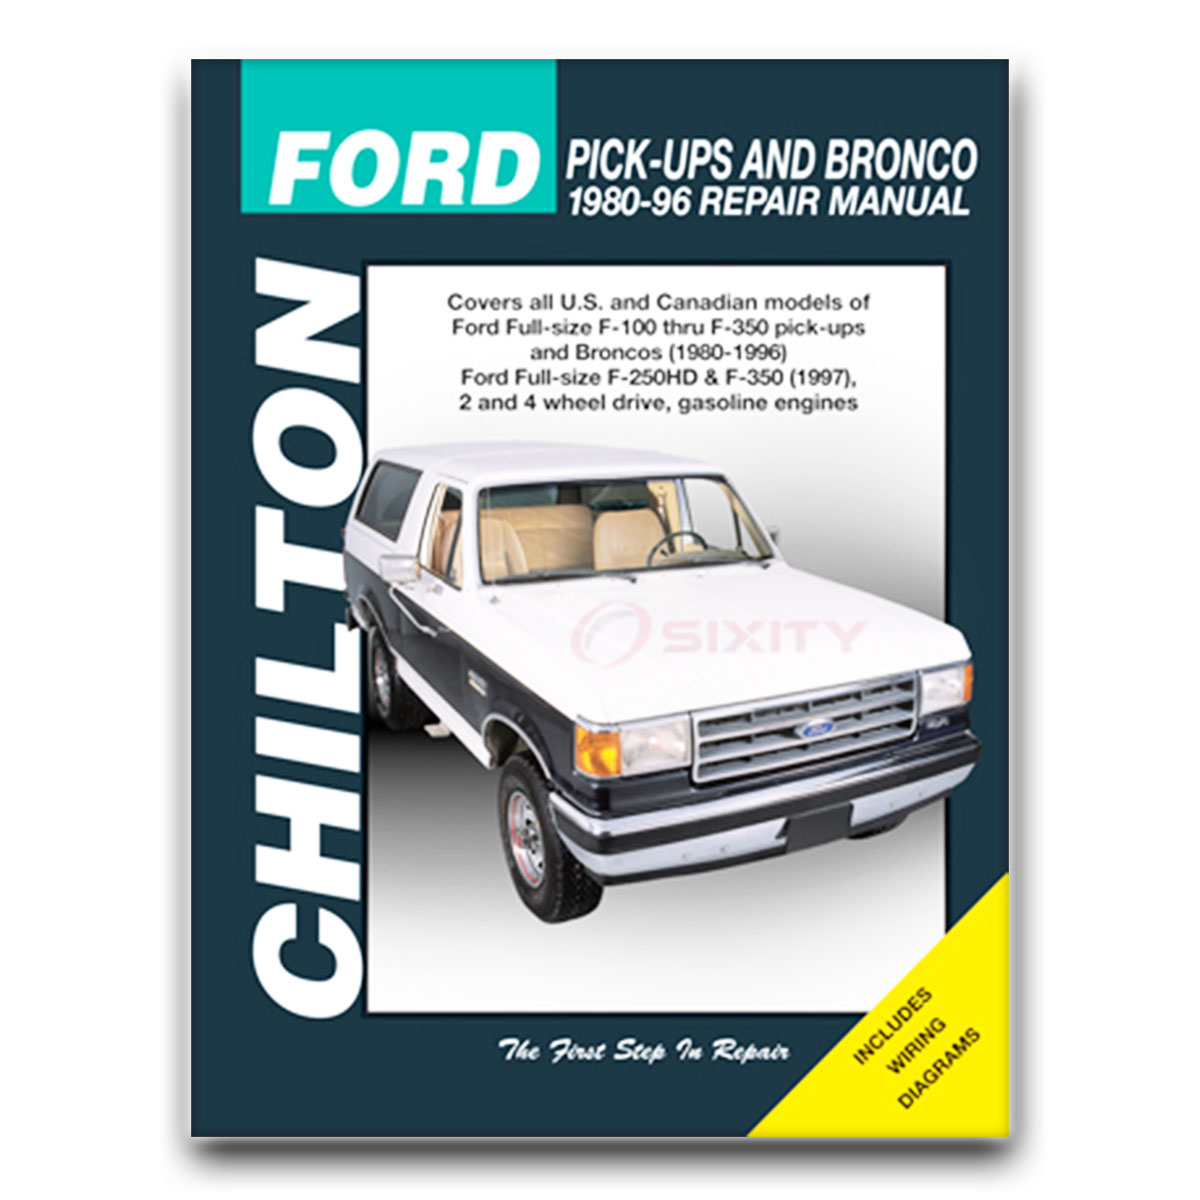 ford f 150 chilton repair manual eddie bauer special xl xlt lariat rh ebay com 1987 ford f150 manual transmission 1987 ford f150 manual slave clutch adjustment